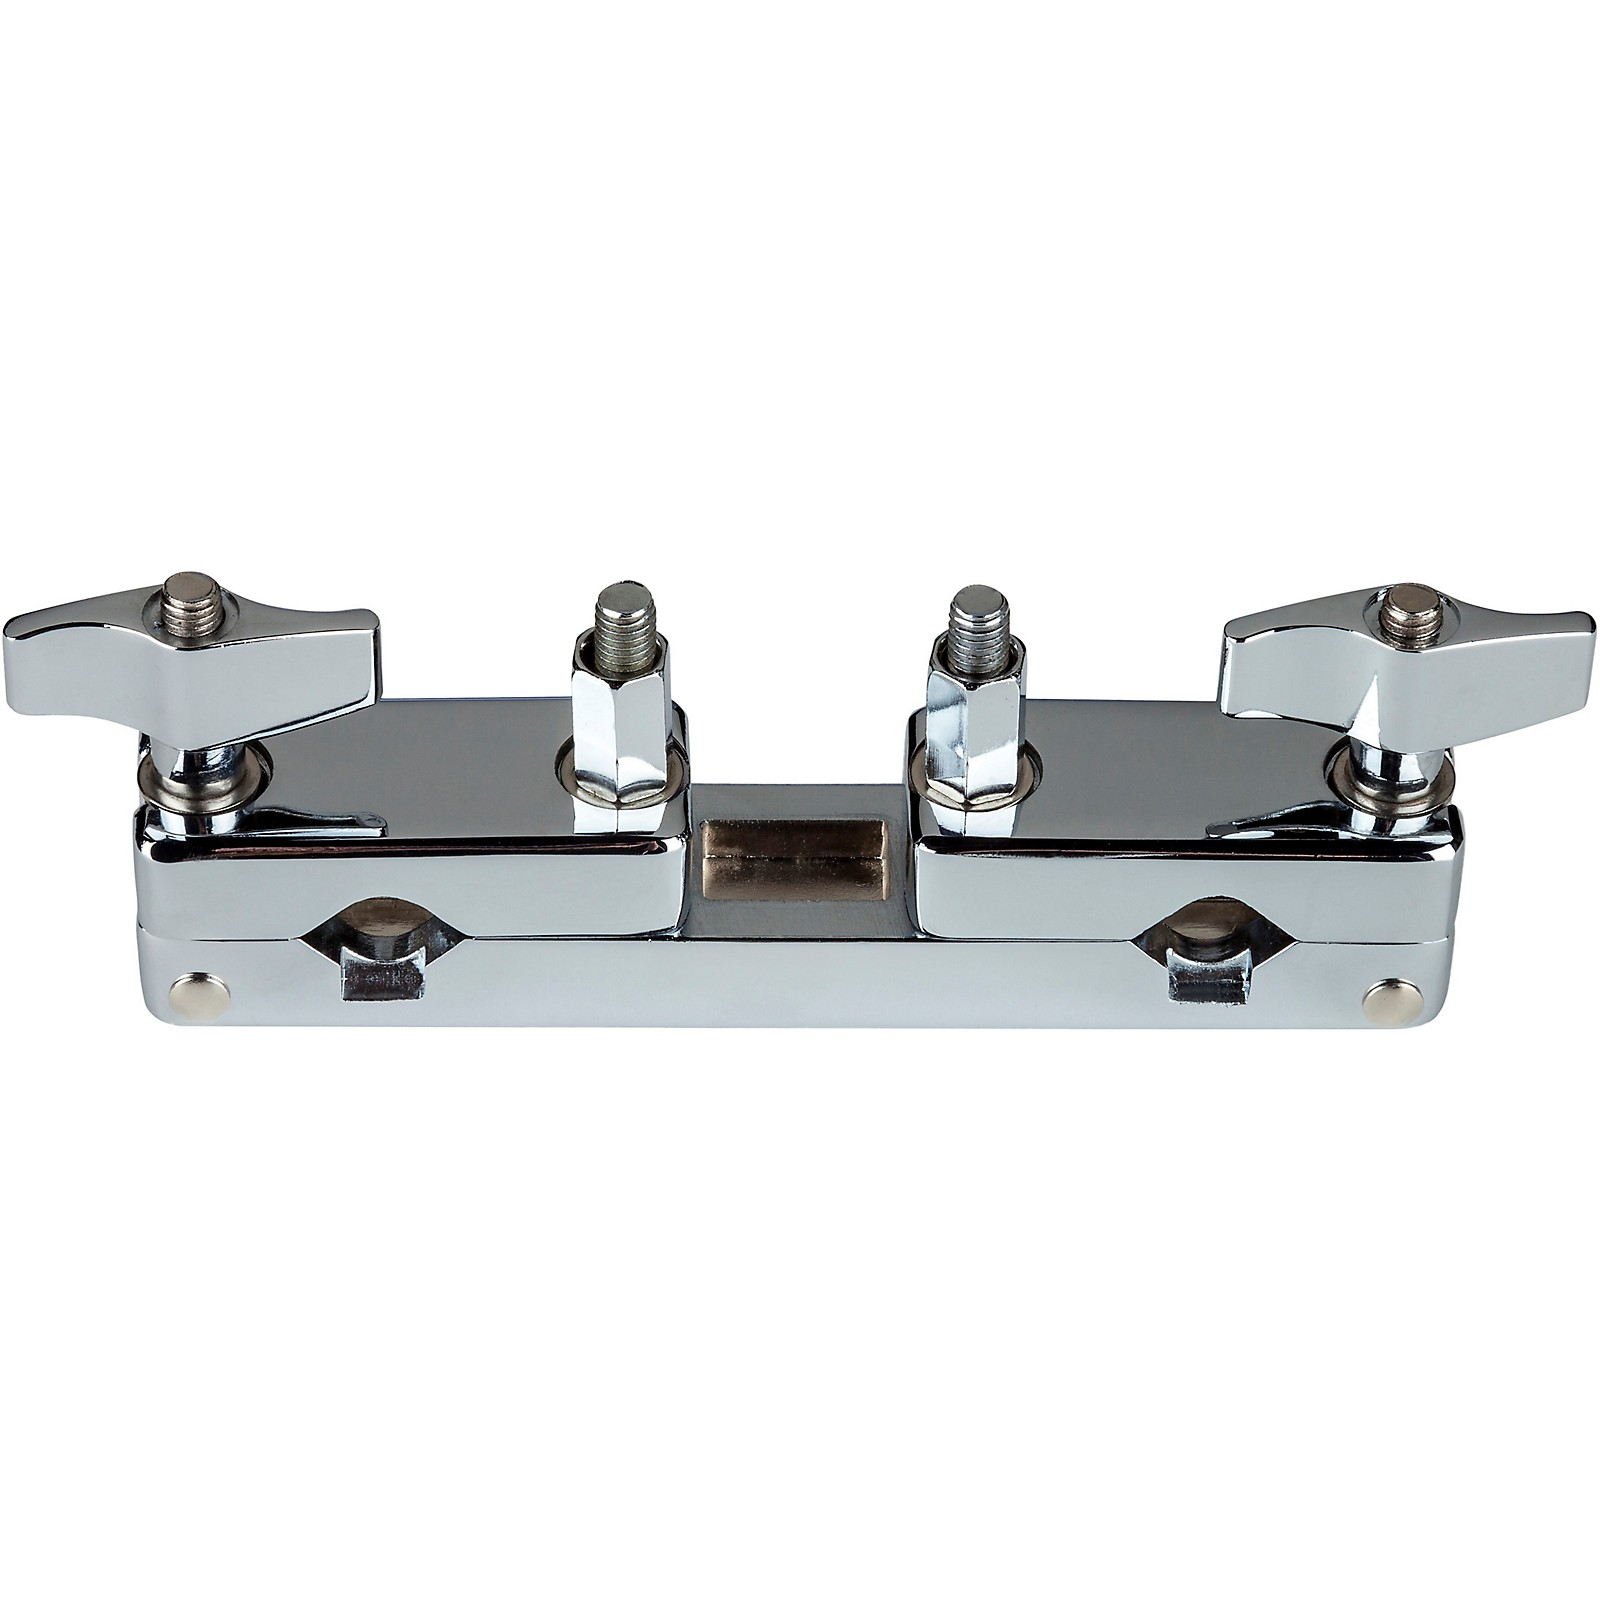 ddrum RX Series Double-Sided Clamp